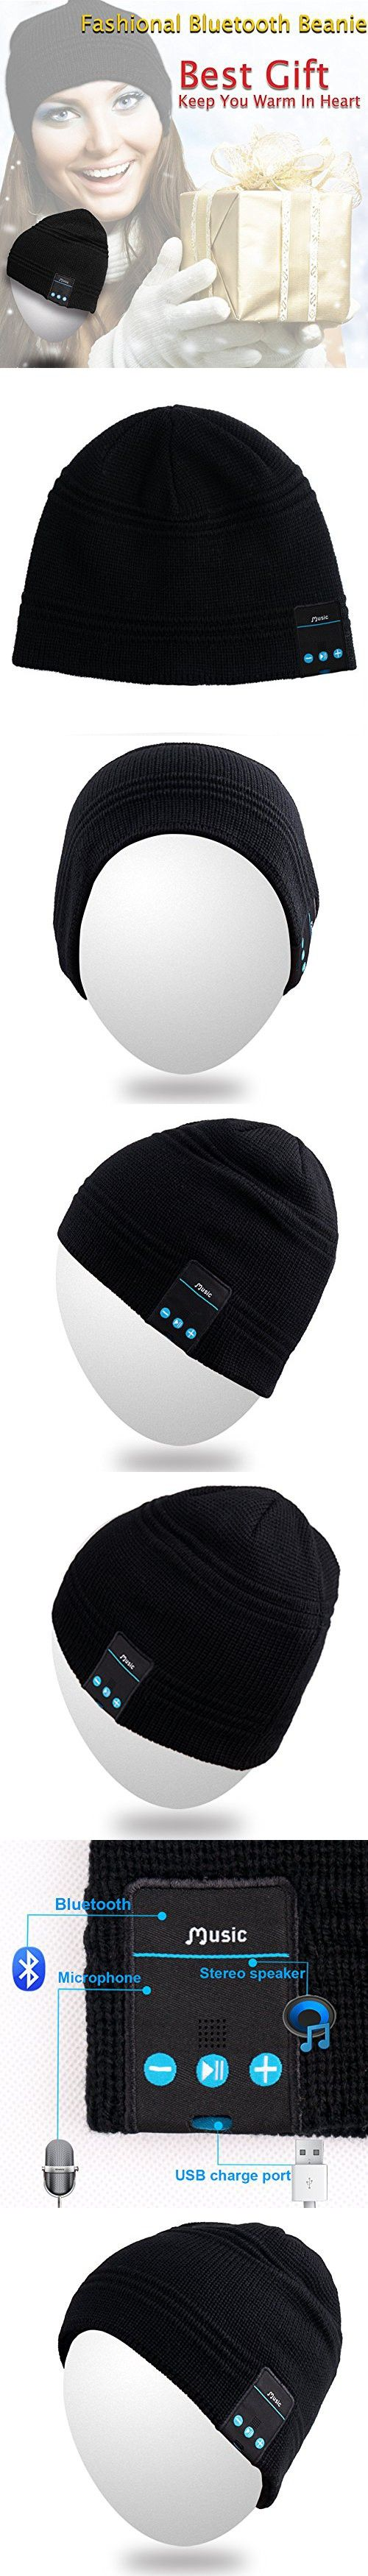 Qshell Wireless Bluetooth Headset Music Beanie Women Men Winter Knitted Hat Trendy Cap with Speaker & Noise Cancelling Mic for Running Sports,Compatible with Iphone Samsung,Best Christmas Gifts -Black